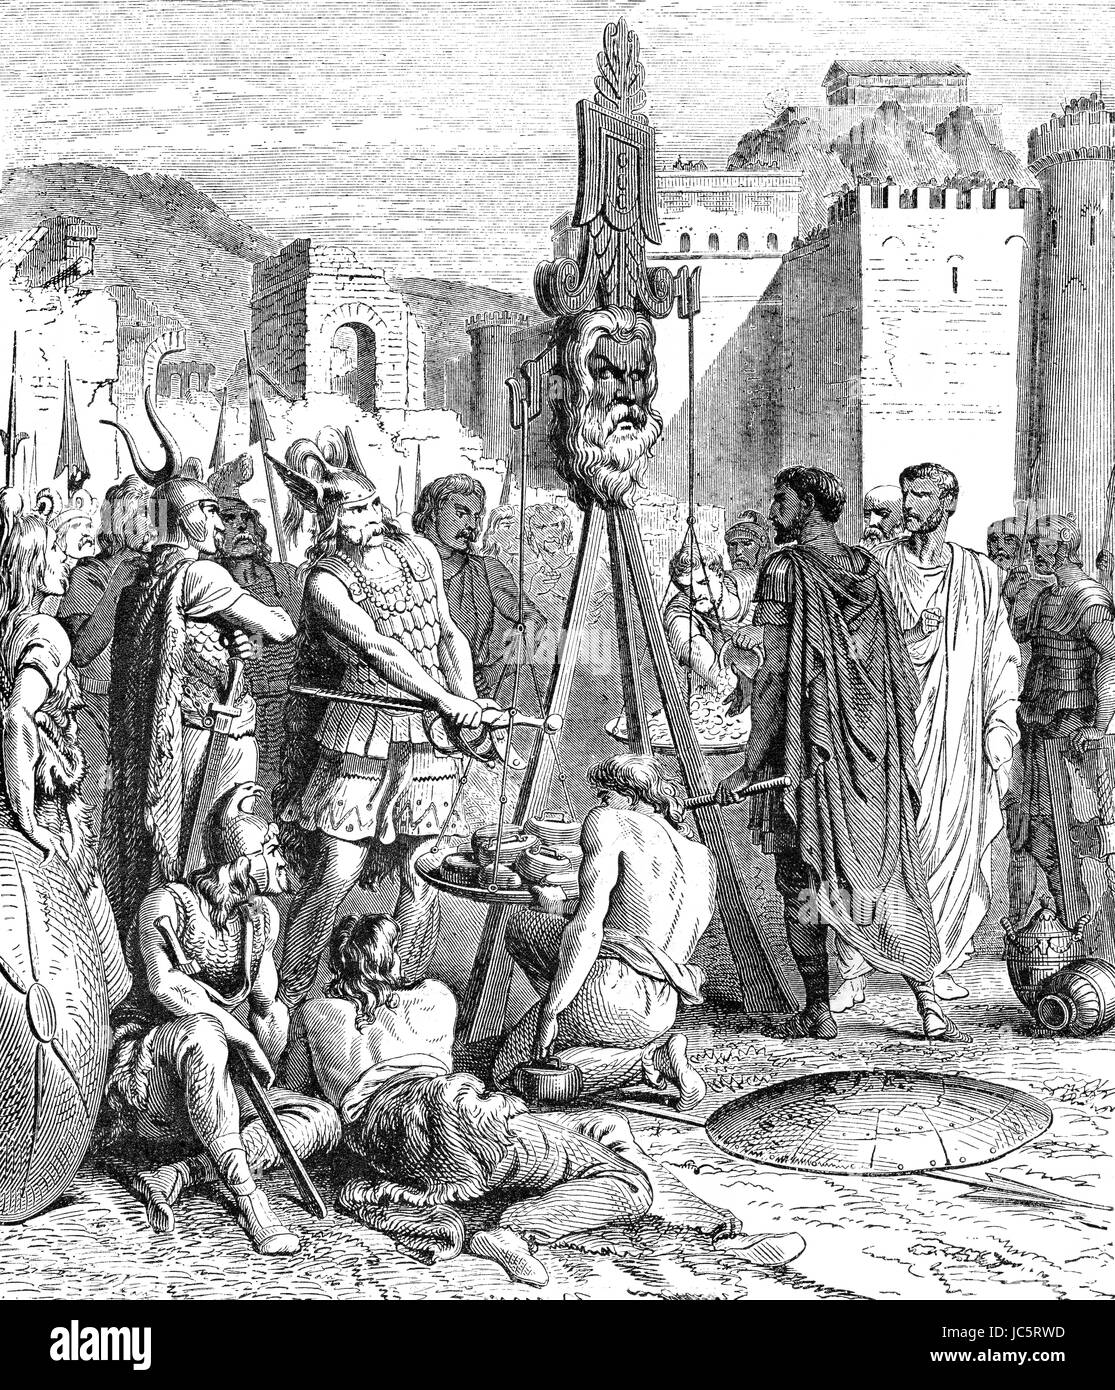 Brennus or Brennos and his Share of the spoils after the Battle of the Allia, ancient Rome - Stock Image